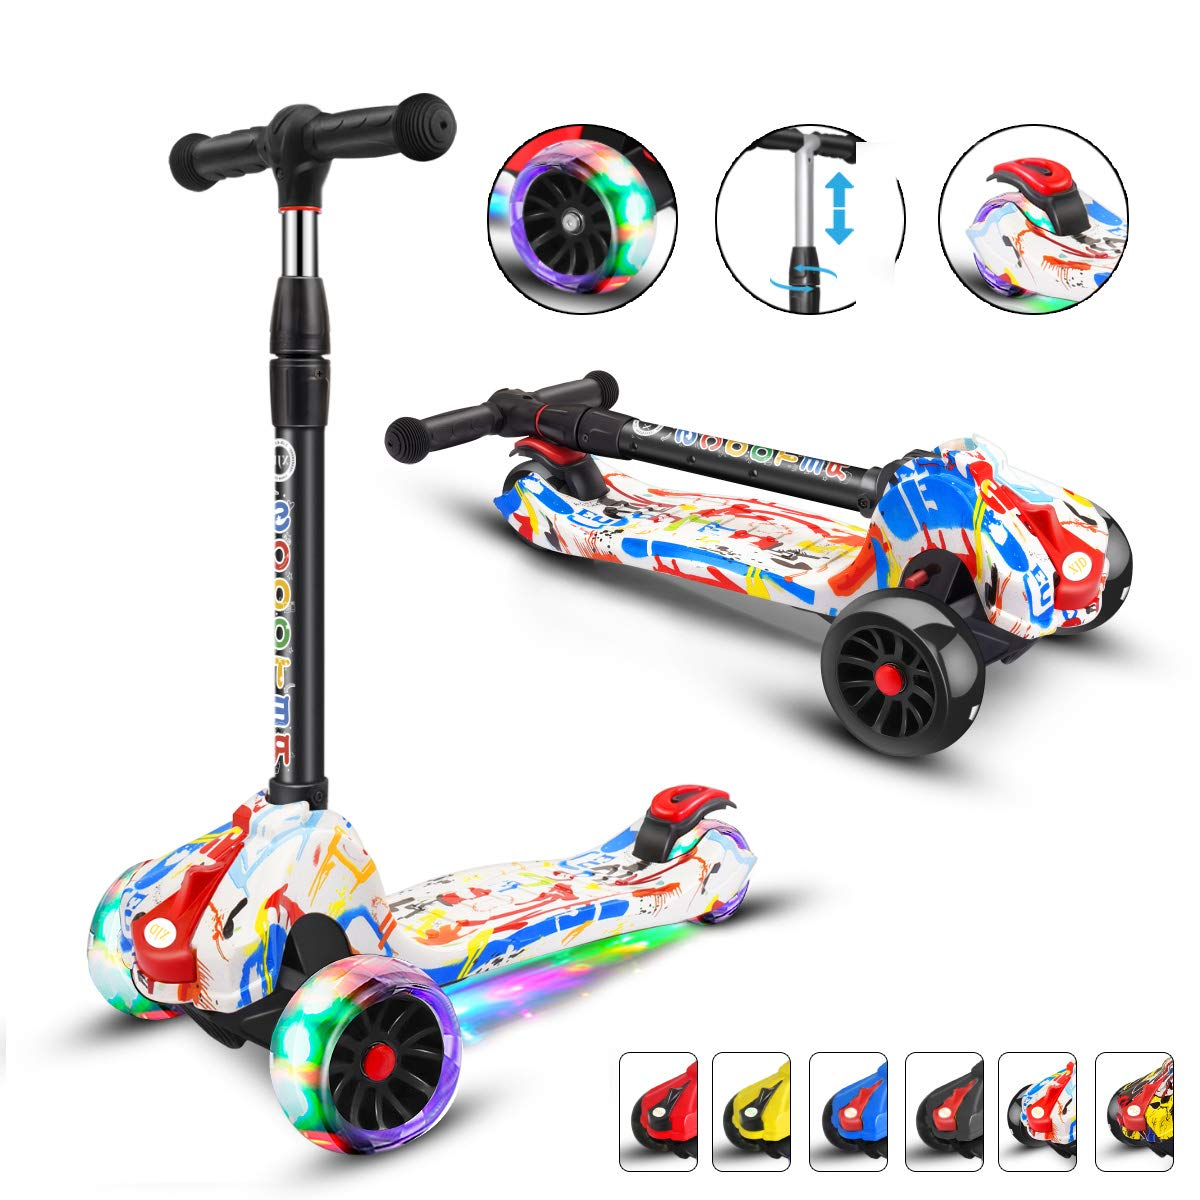 Foldable Adjustable Handlebar Lean to Steer Upgraded Wheels LED Light UP Wheels Kids Scooter Kick Scooter 3 Wheels for Boys and Girls Age 3-8 Years Old